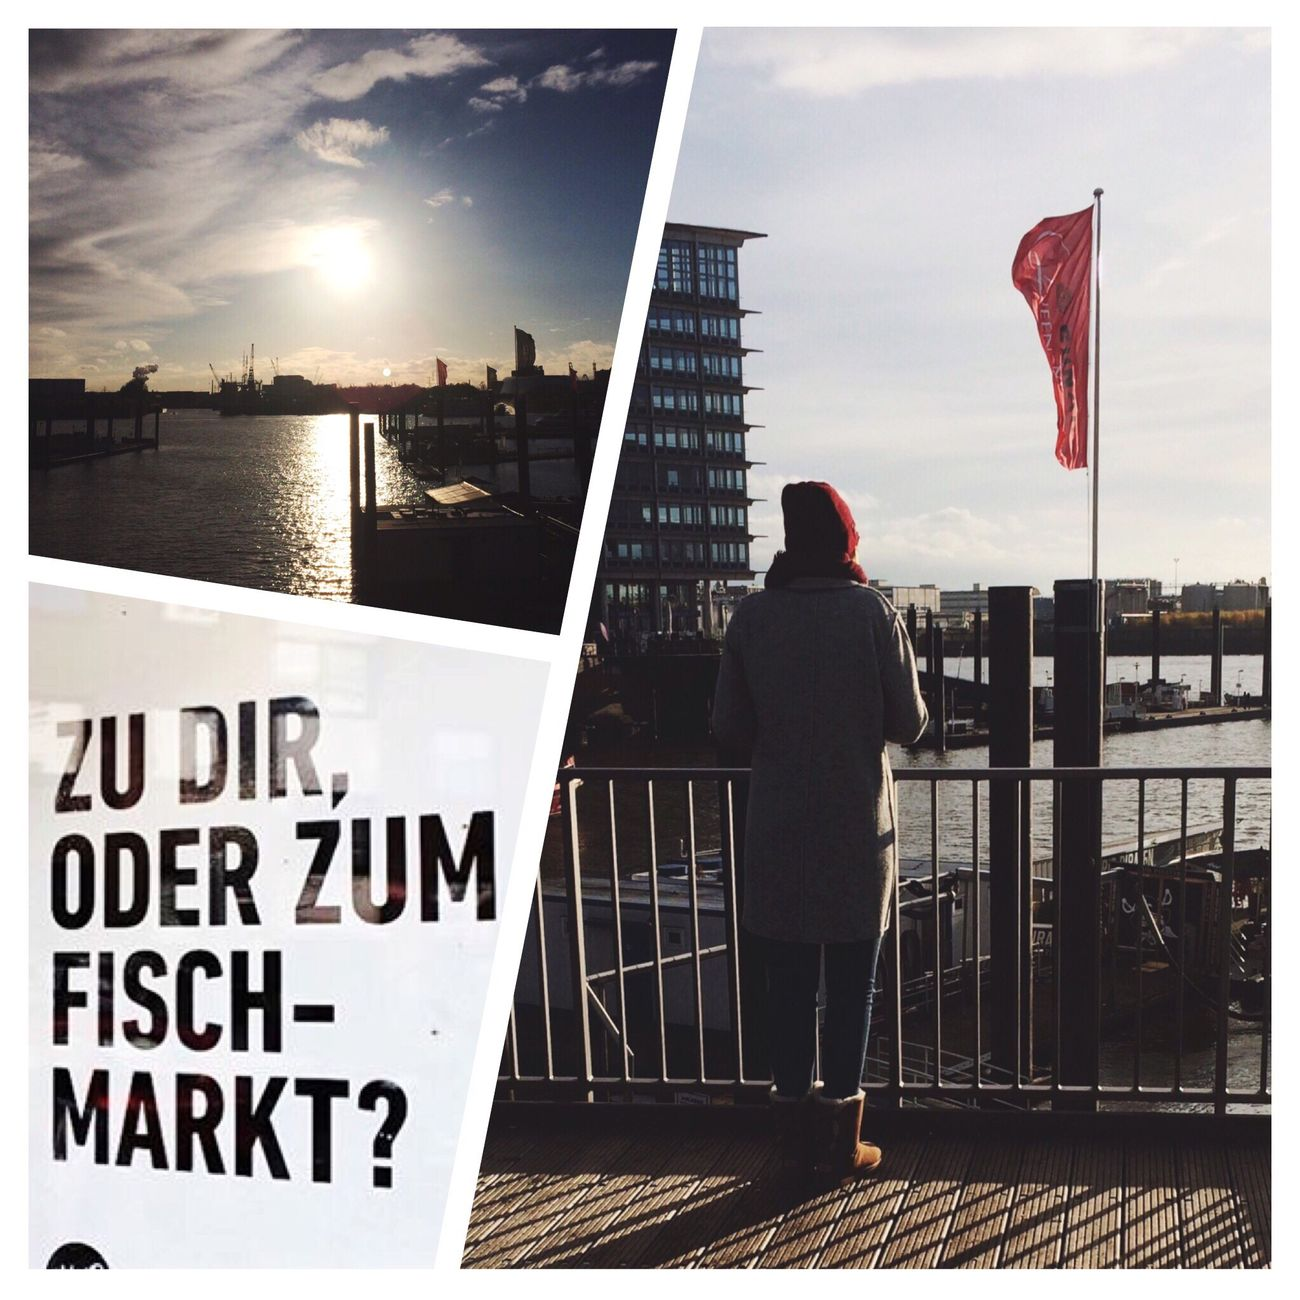 Hamburch Fischmarkt St Pauli... What Else?